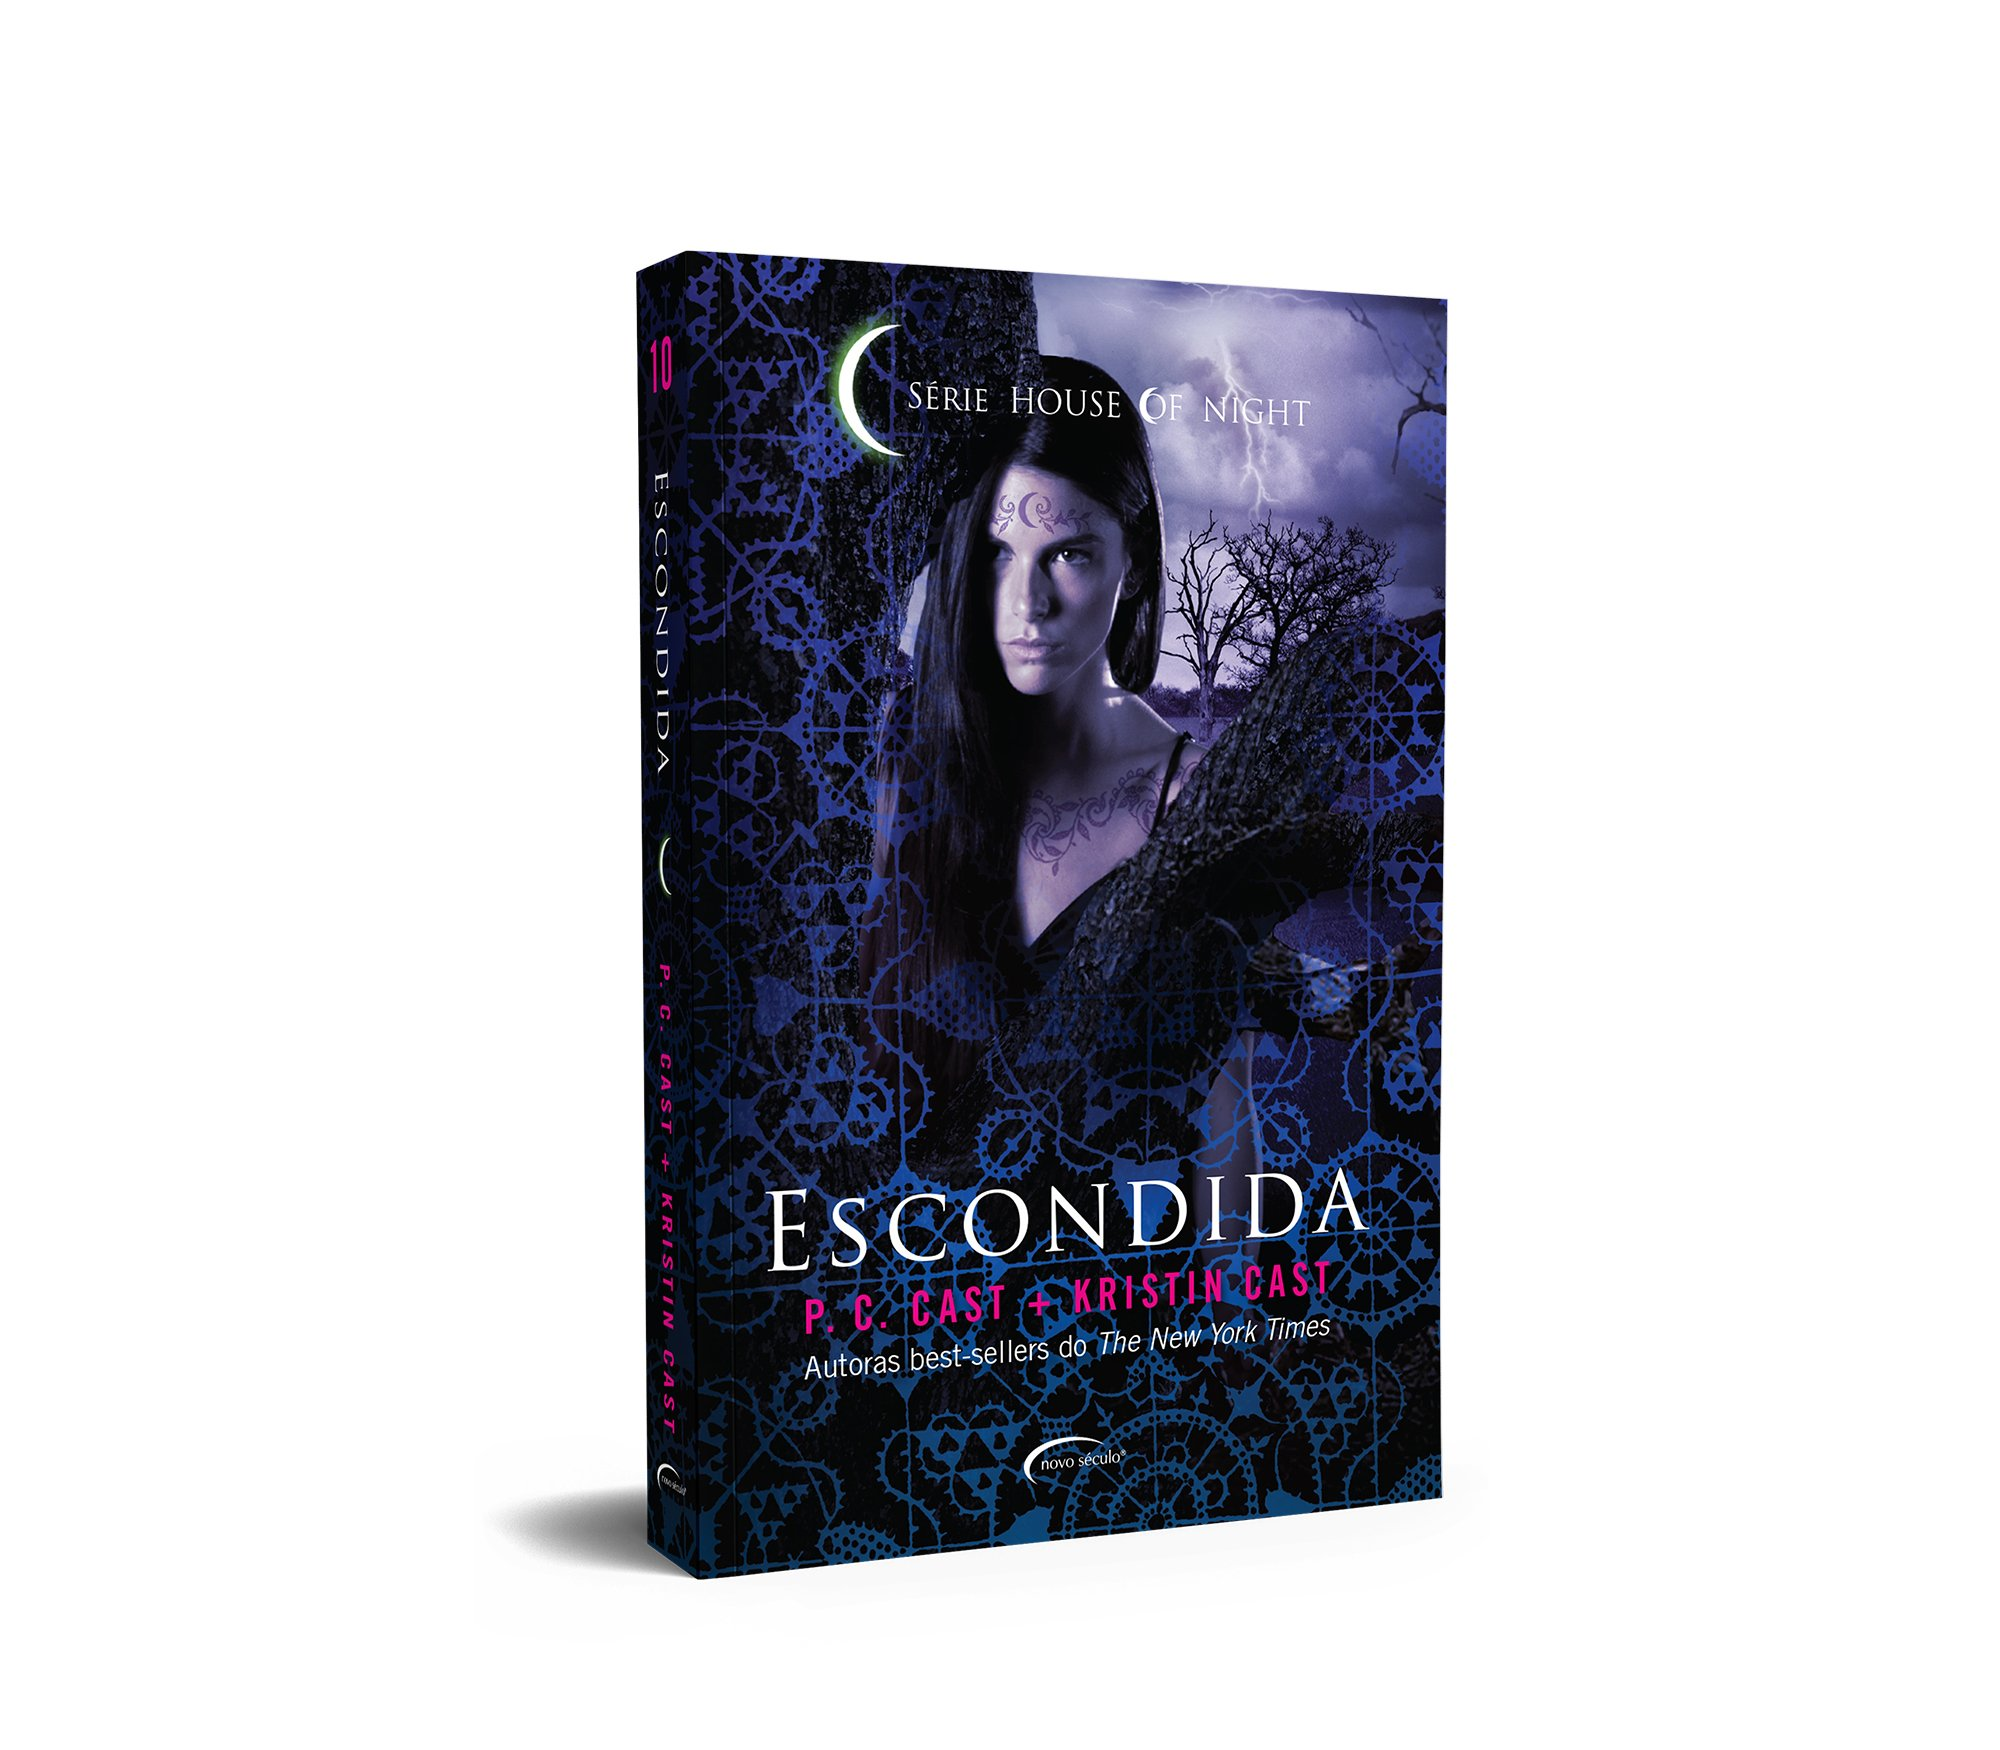 Of pdf livro revelada house night